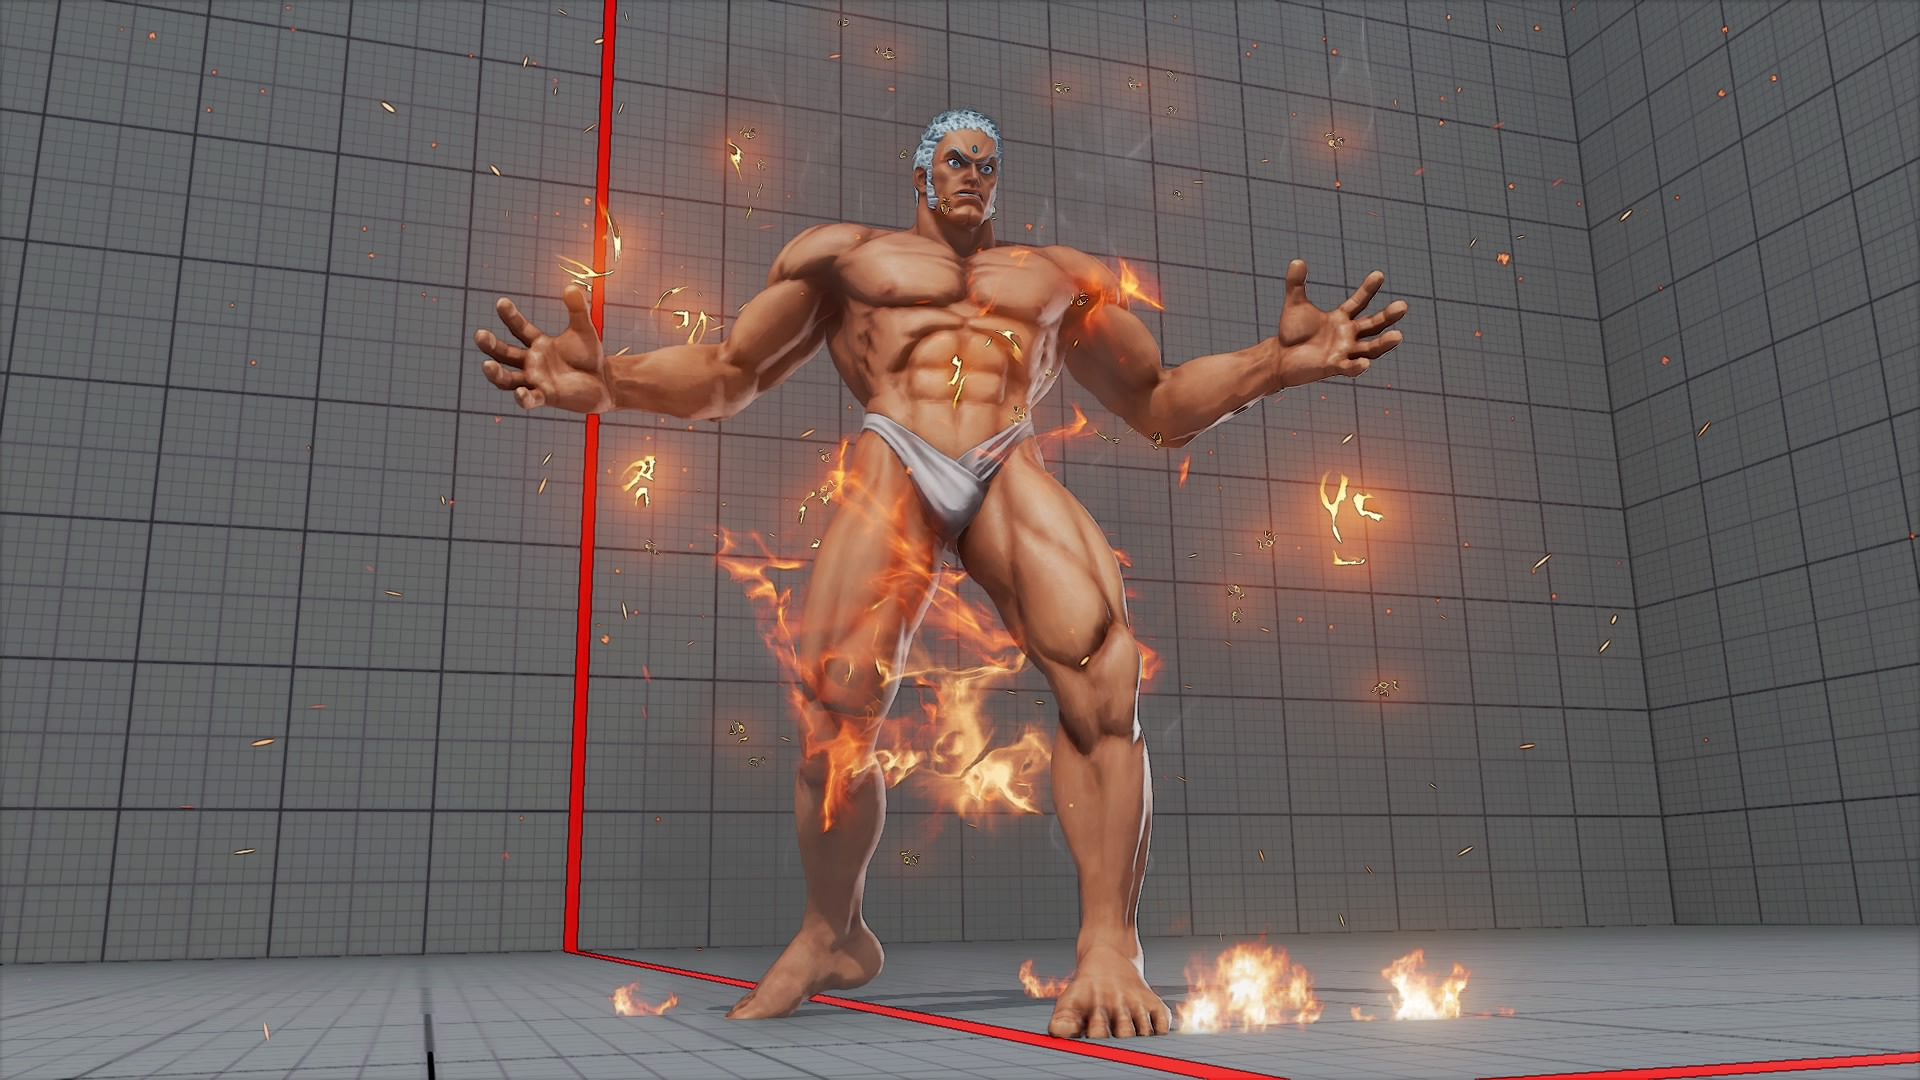 Street Fighter 5: Arcade Edition - Alter Costumes With This